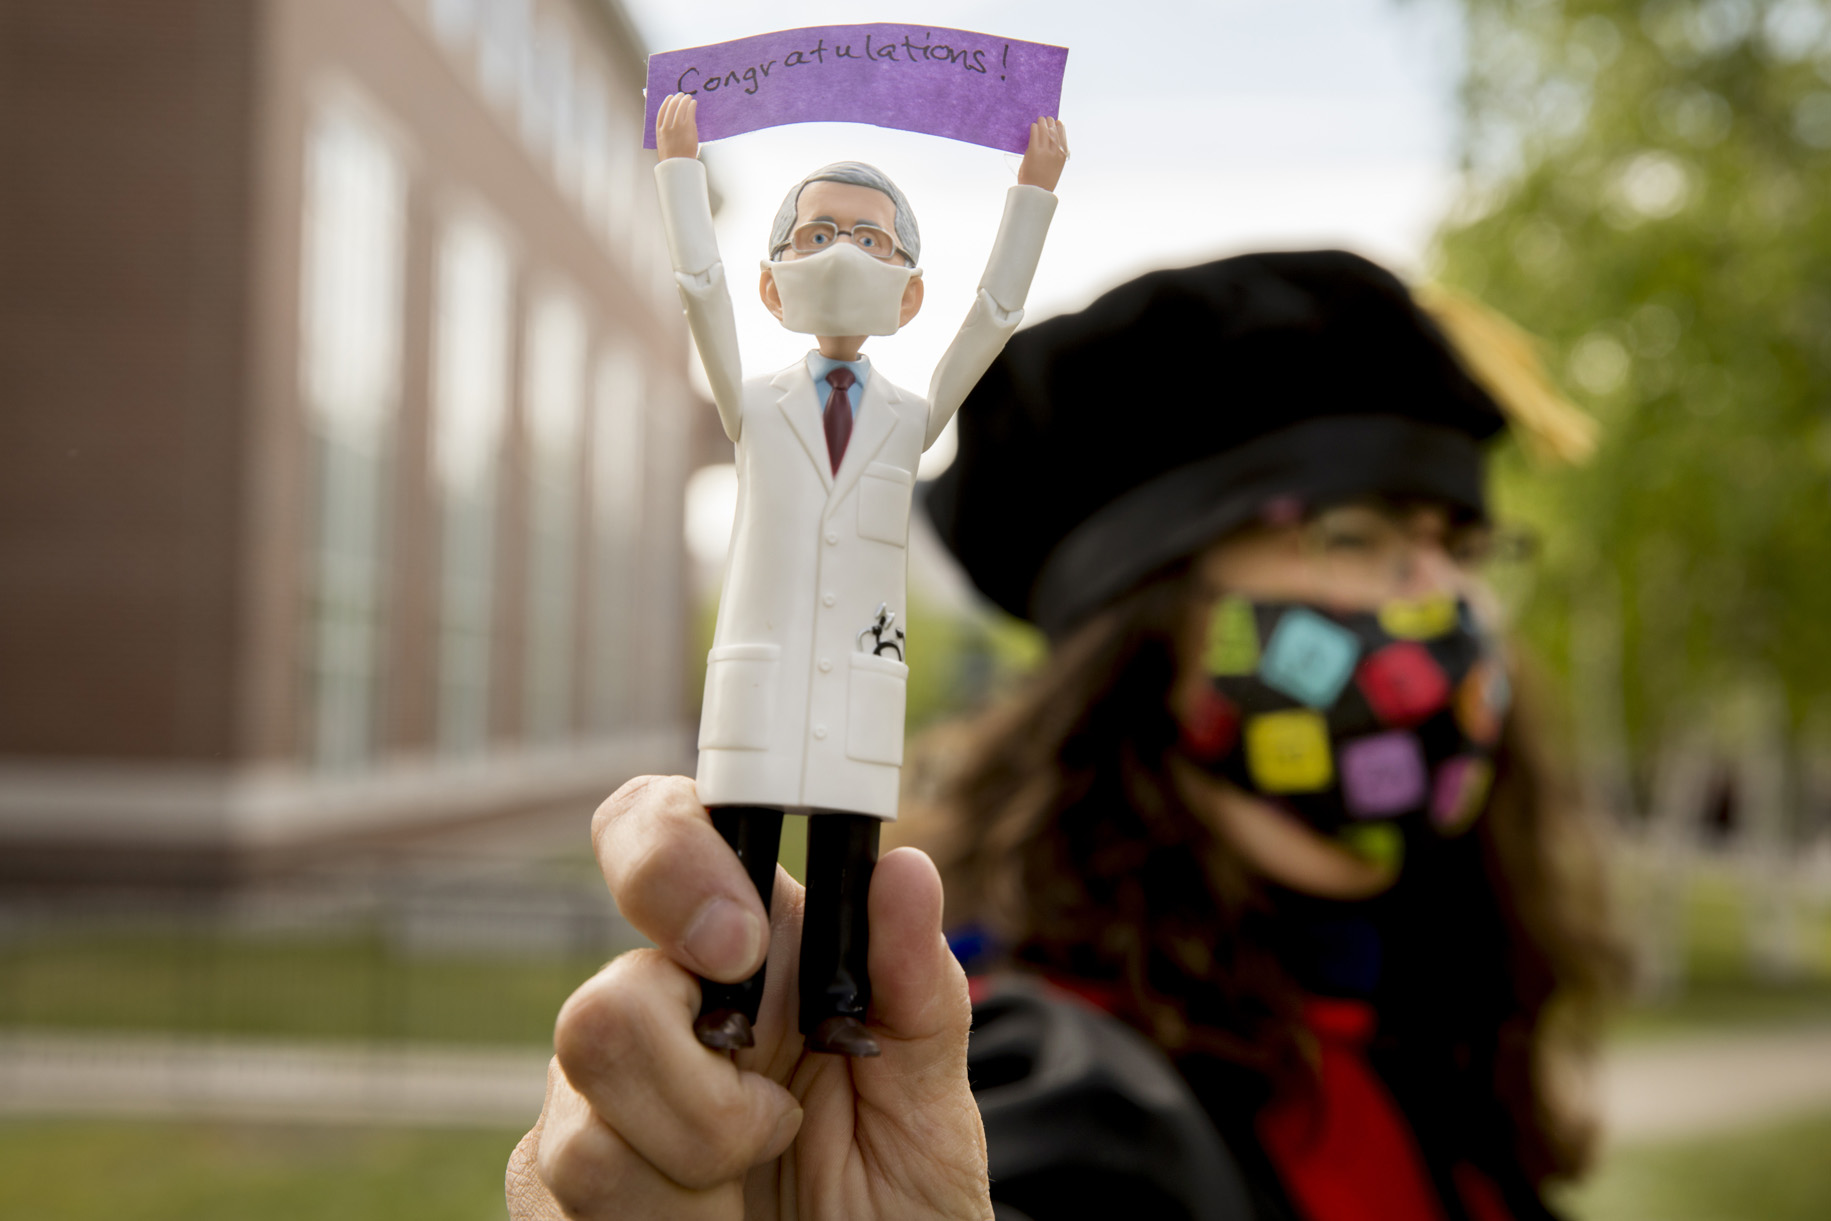 """Professor of Chemistry and Biochemistry Paula Schlax displays a Dr. Anthony Fauci action figure holding the word """"Congratulations"""" prior to the morning Commencement procession on May 27, 2021. Fauci received an honorary degree from Bates in 1993. (Phyllis Graber Jensen/Bates College)"""